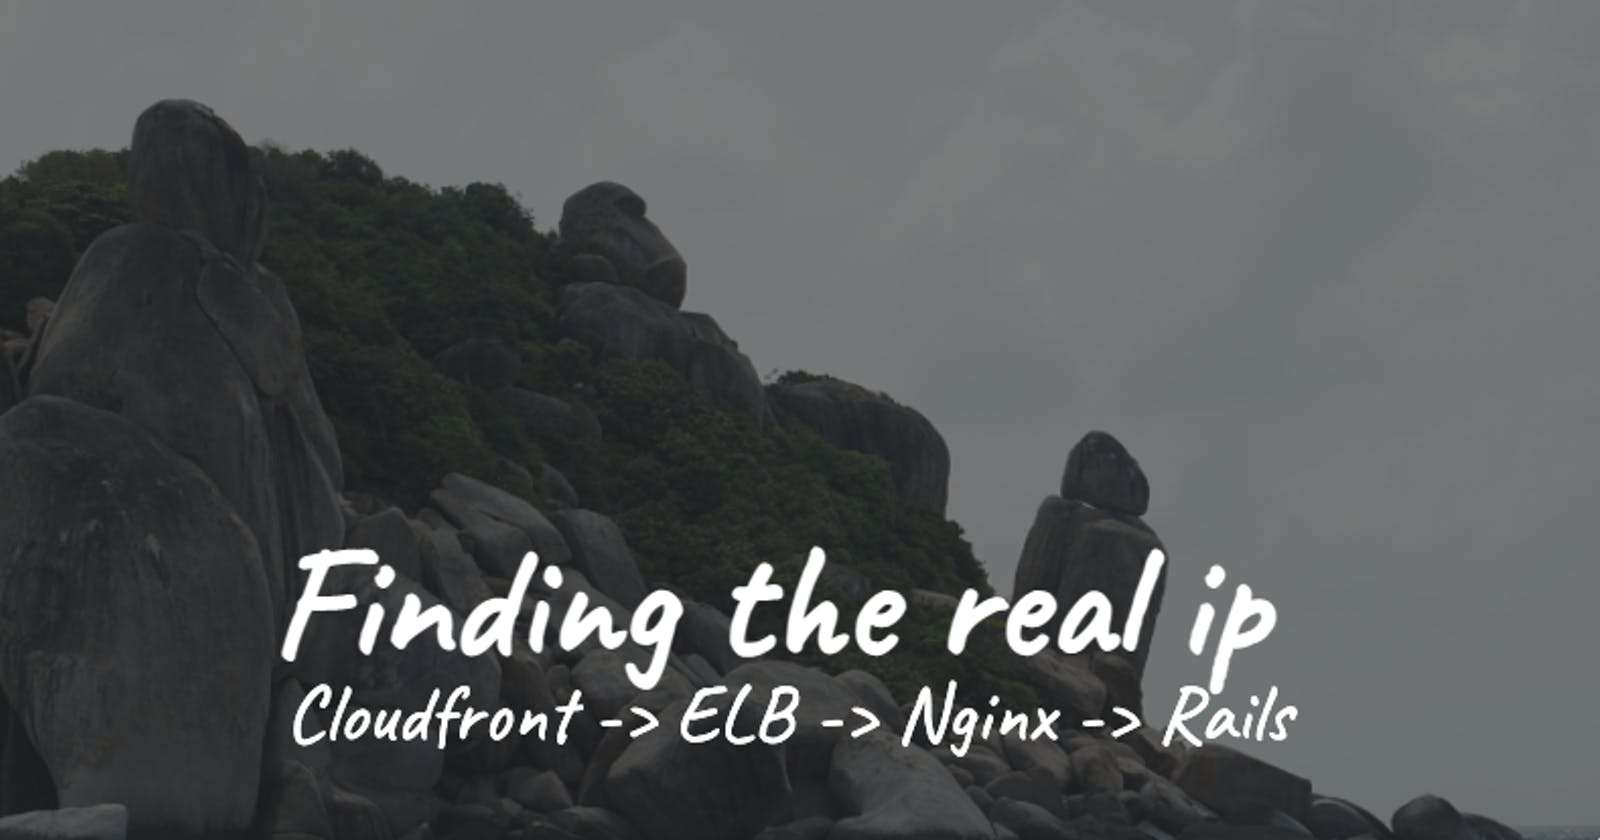 Finding the real ip: Cloudfront -> ELB -> Nginx -> Rails